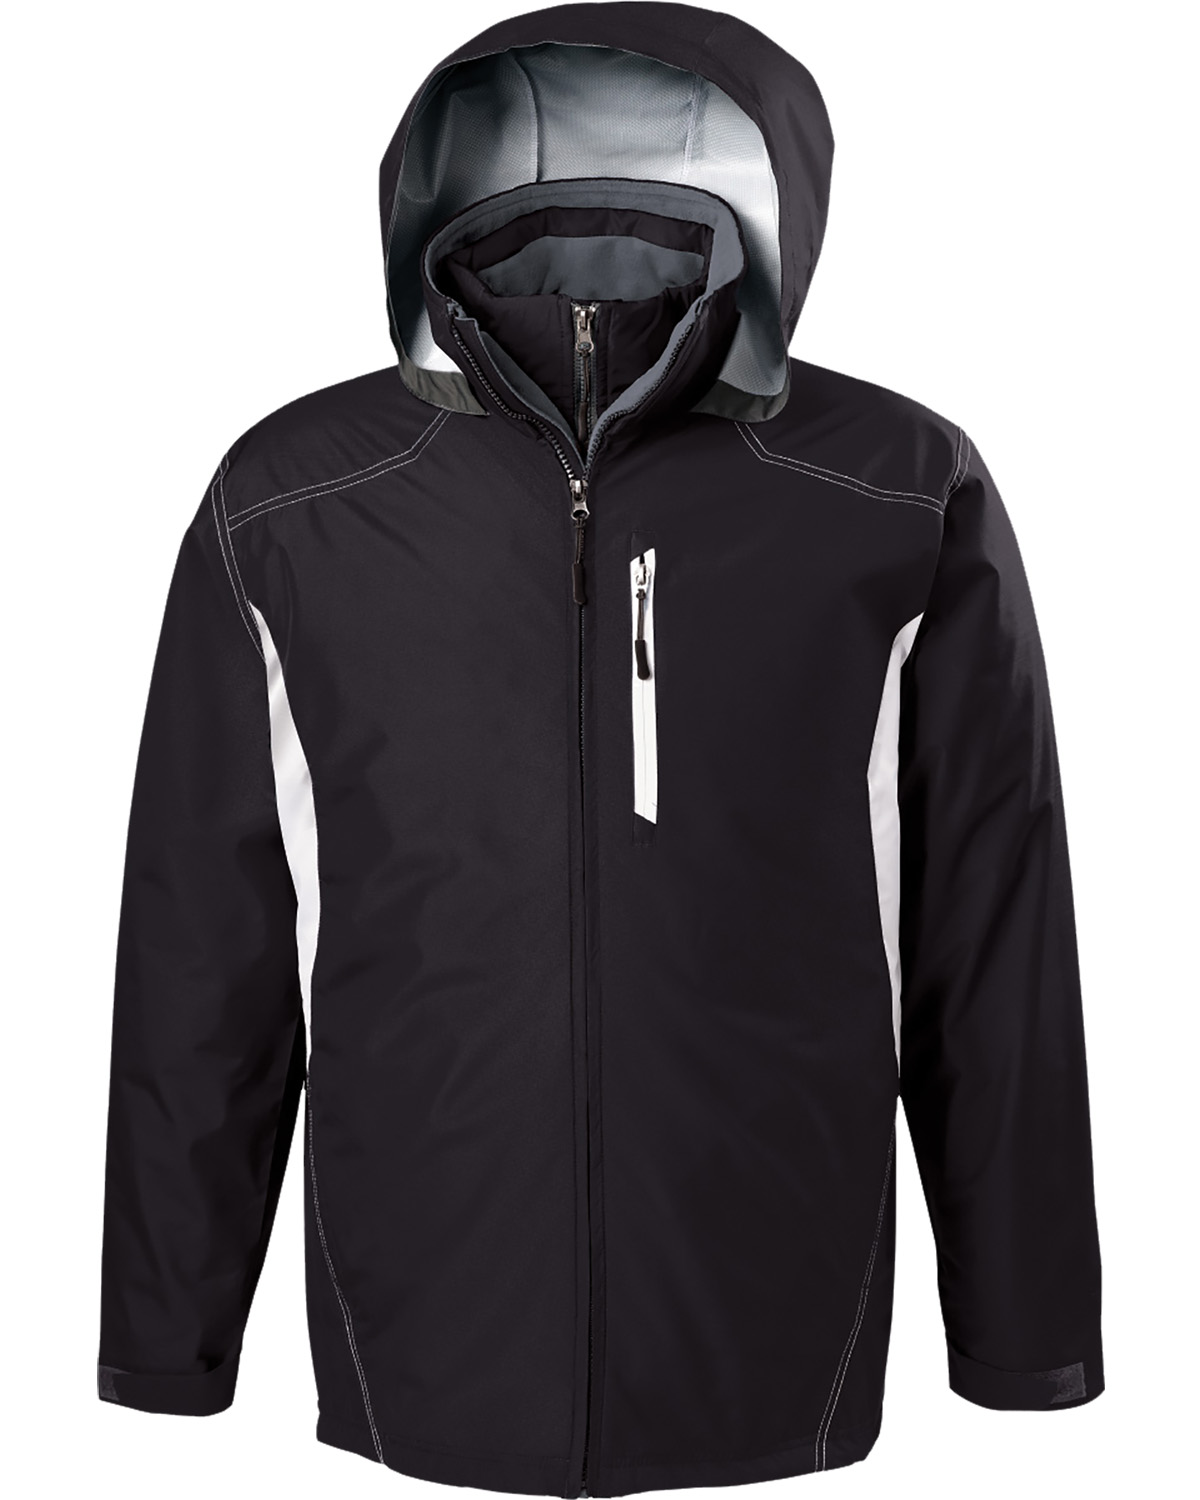 Holloway 229137 - Adult Polyester Full Zip Hooded Interval Jacket